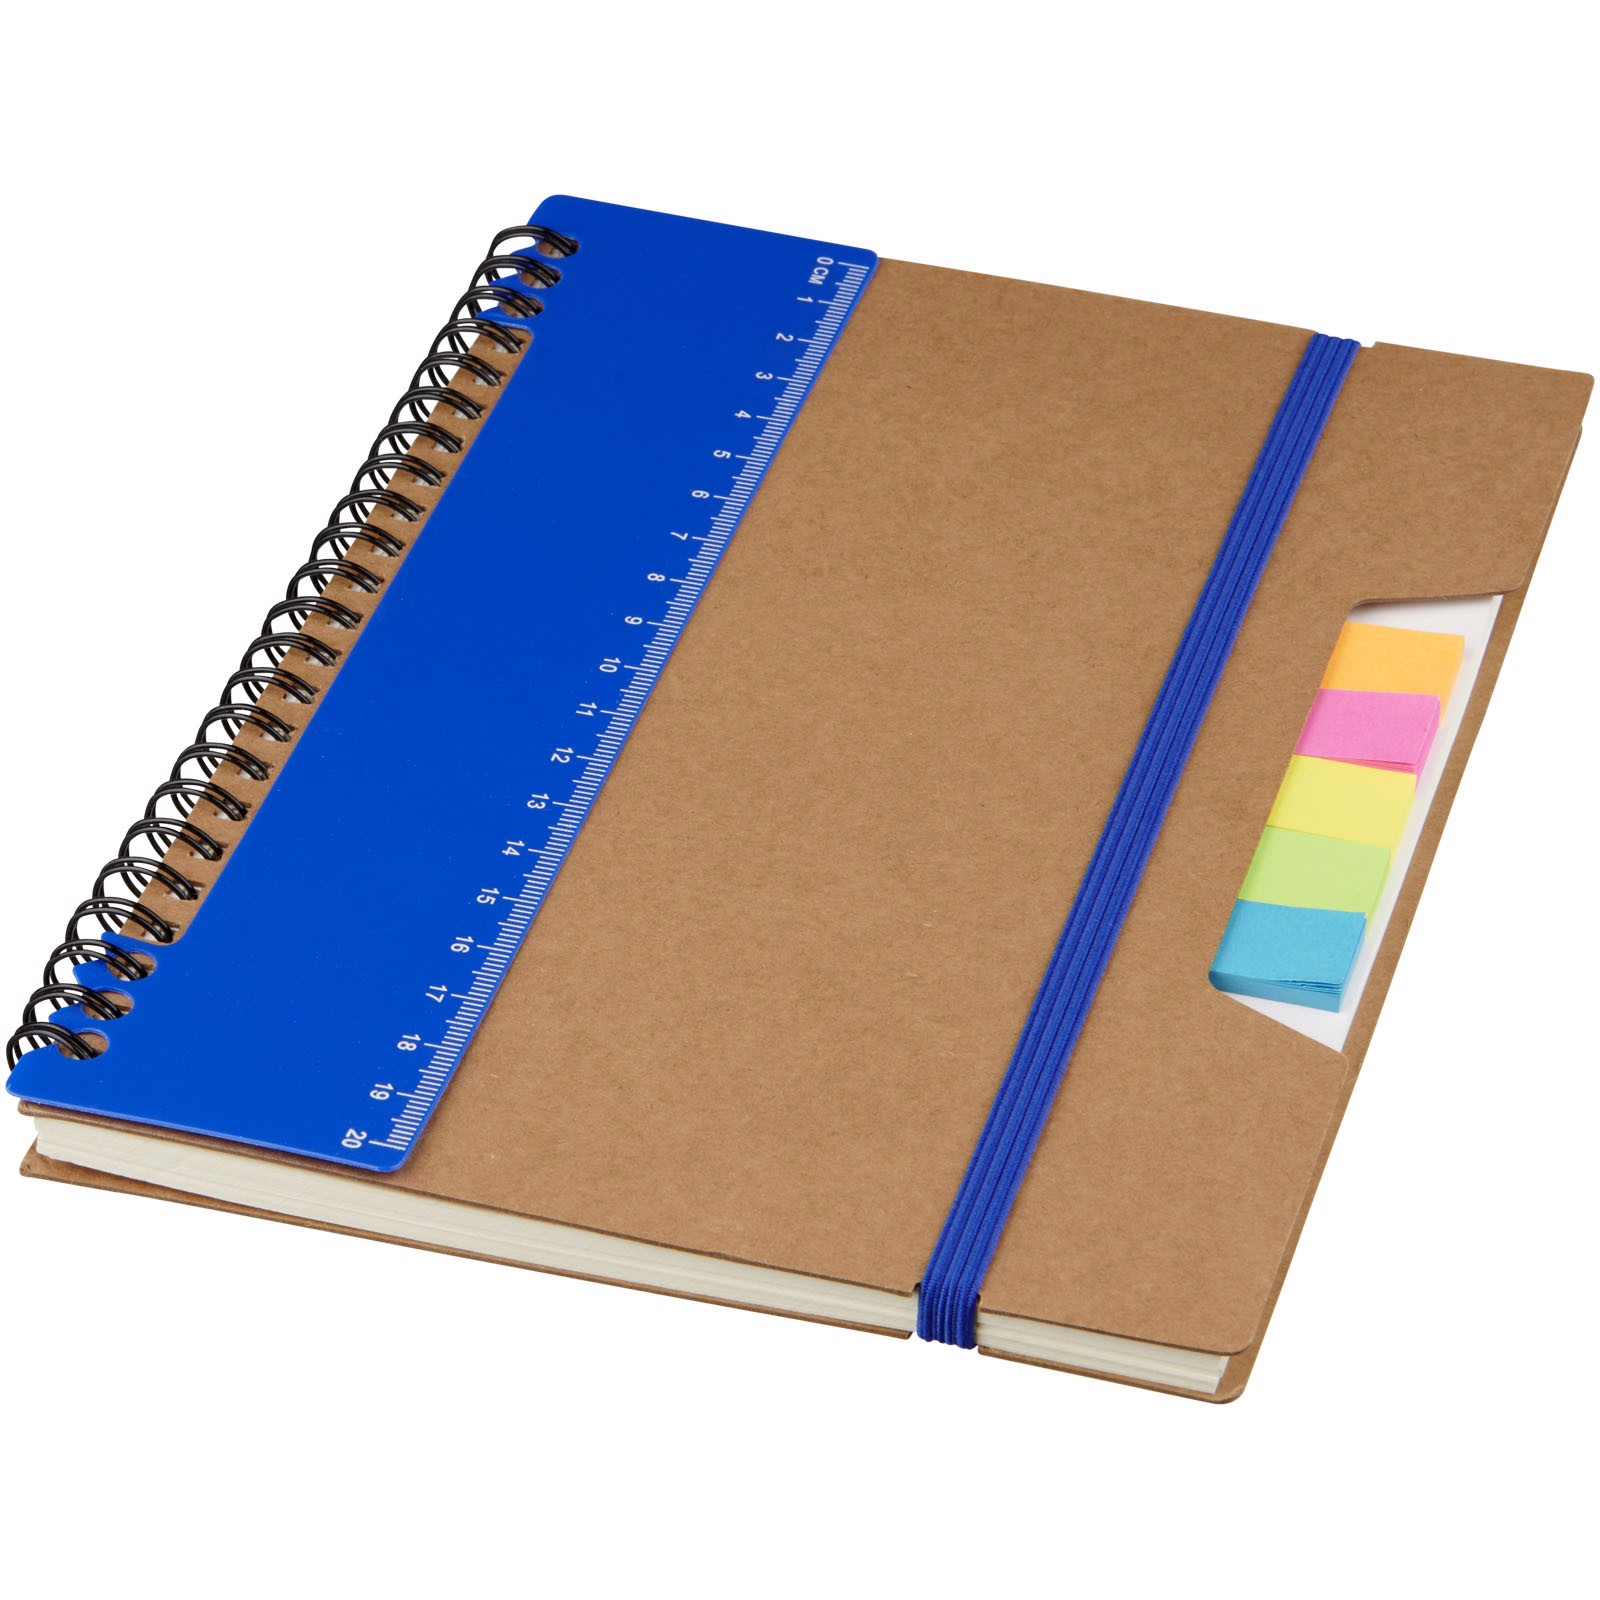 Josie A5 recycled notebook - Blue